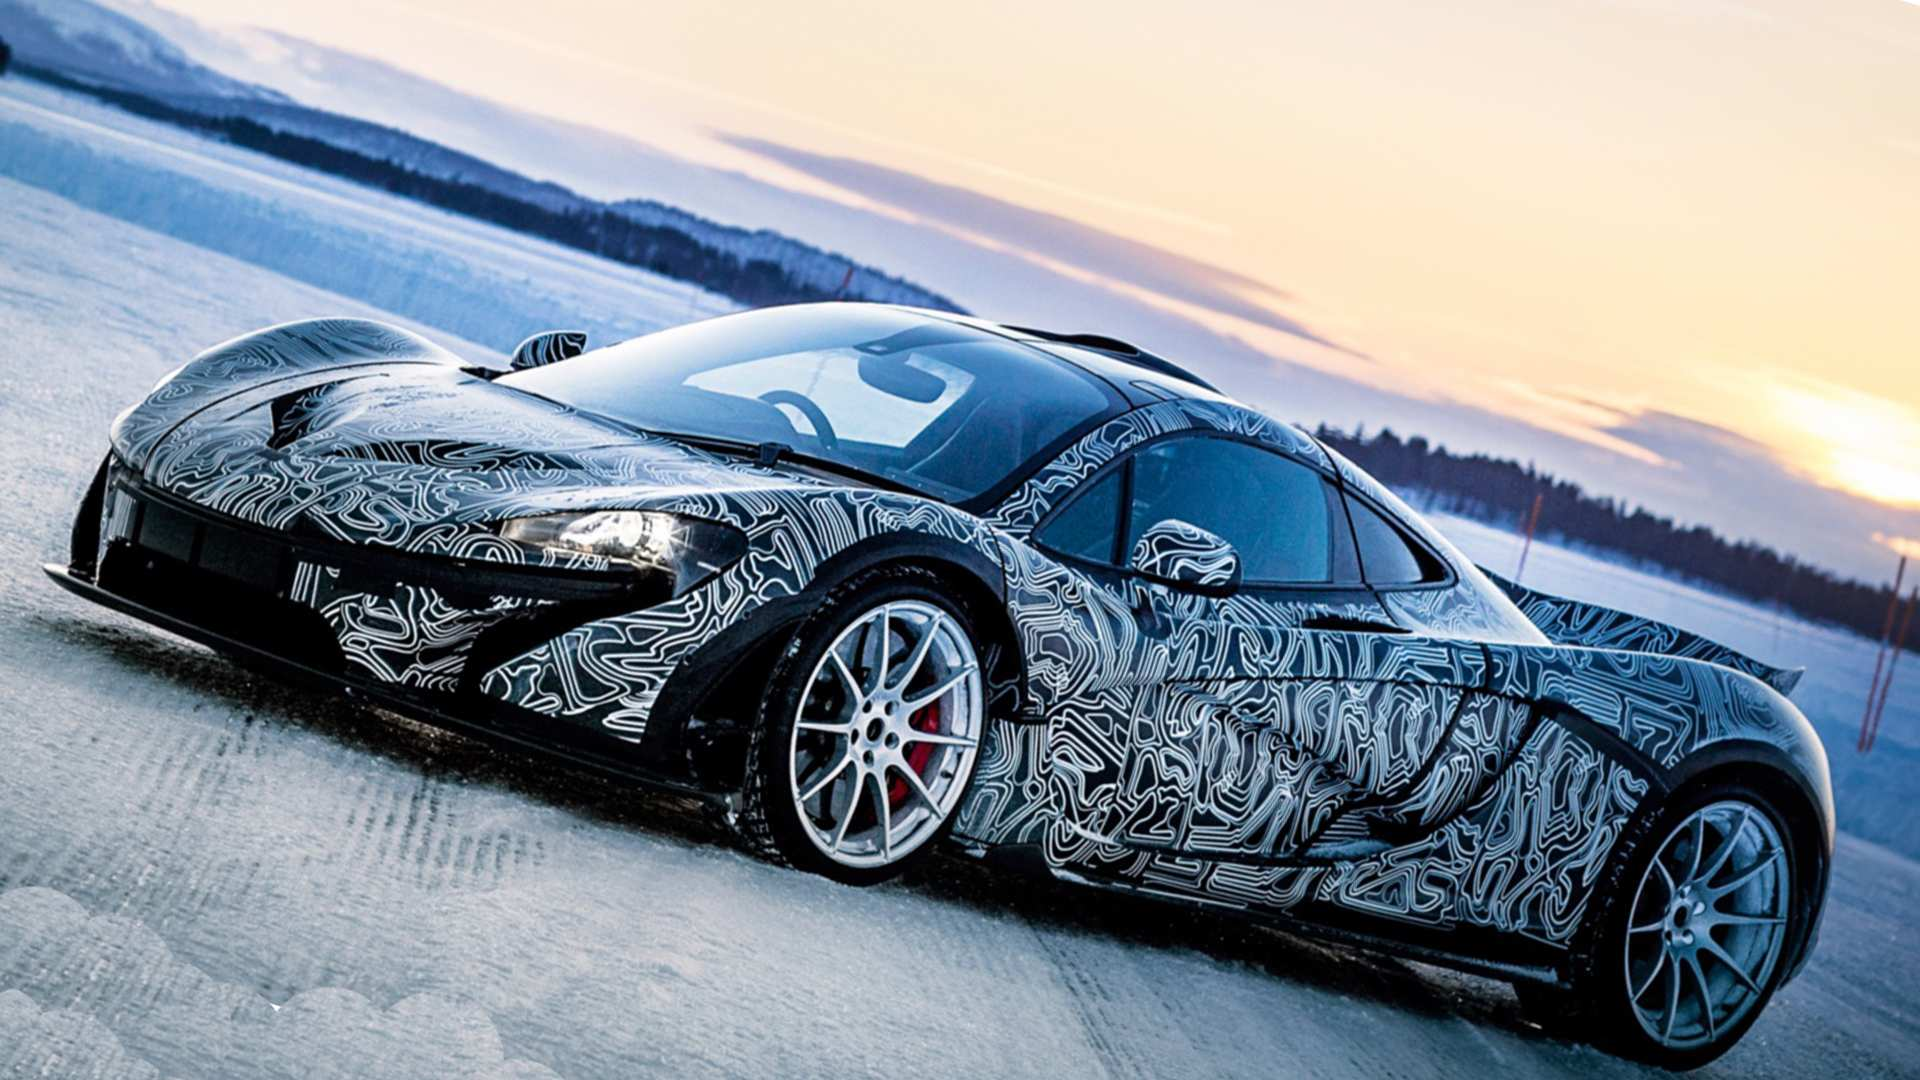 37 Gallery of 2019 Mclaren P1 Price Exterior for 2019 Mclaren P1 Price